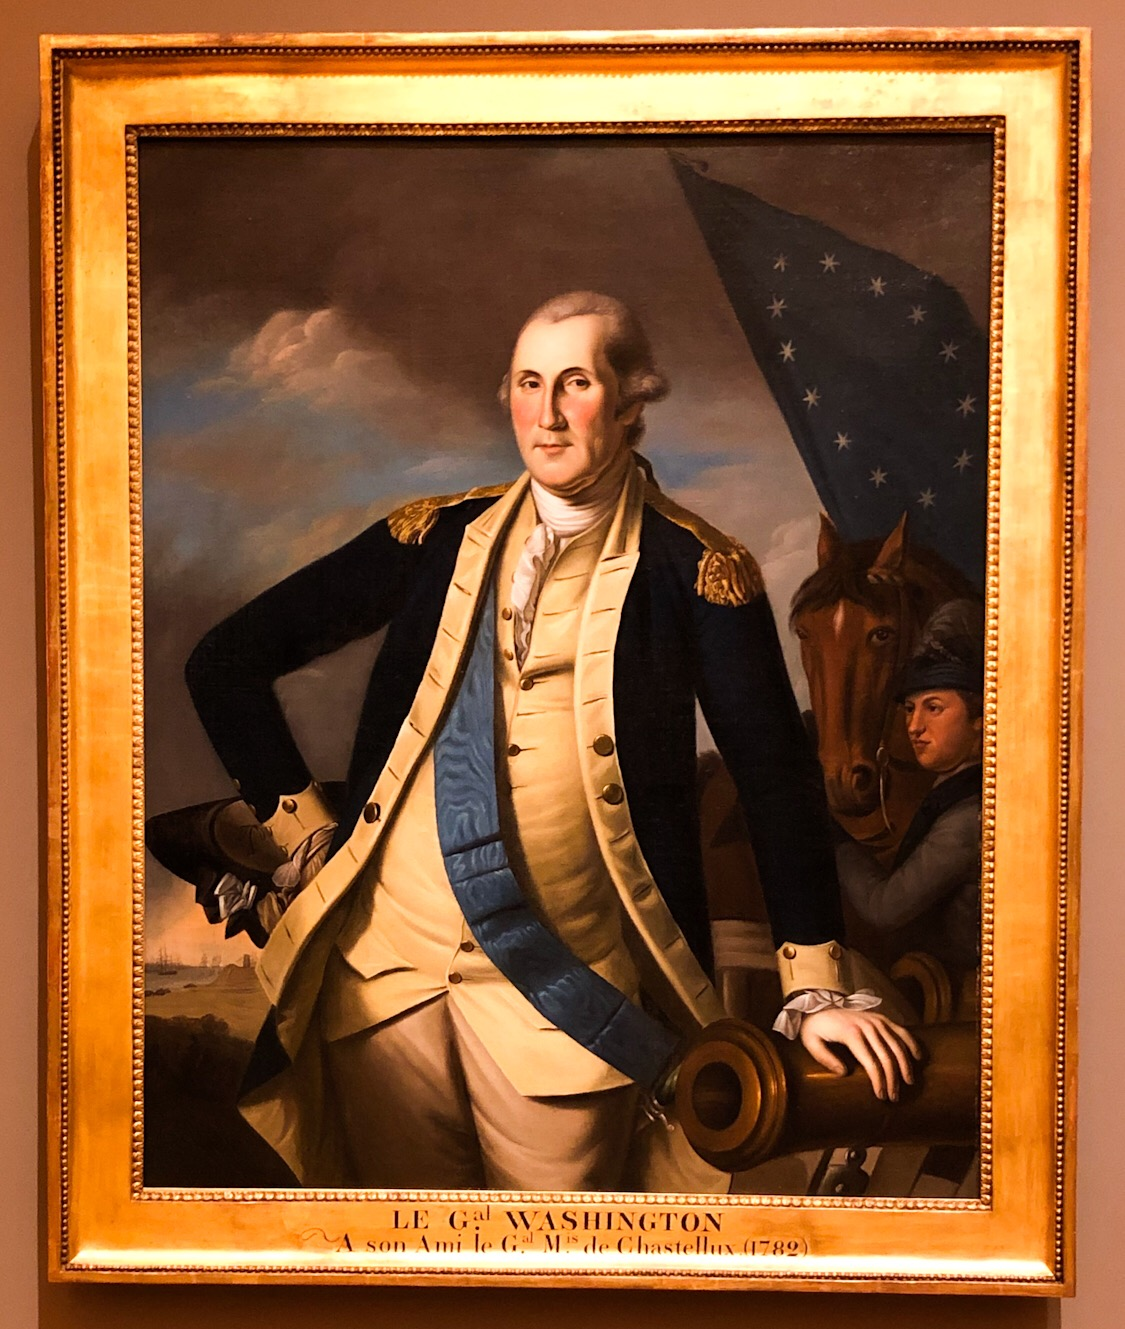 George Washington by Charles Willson Peale.